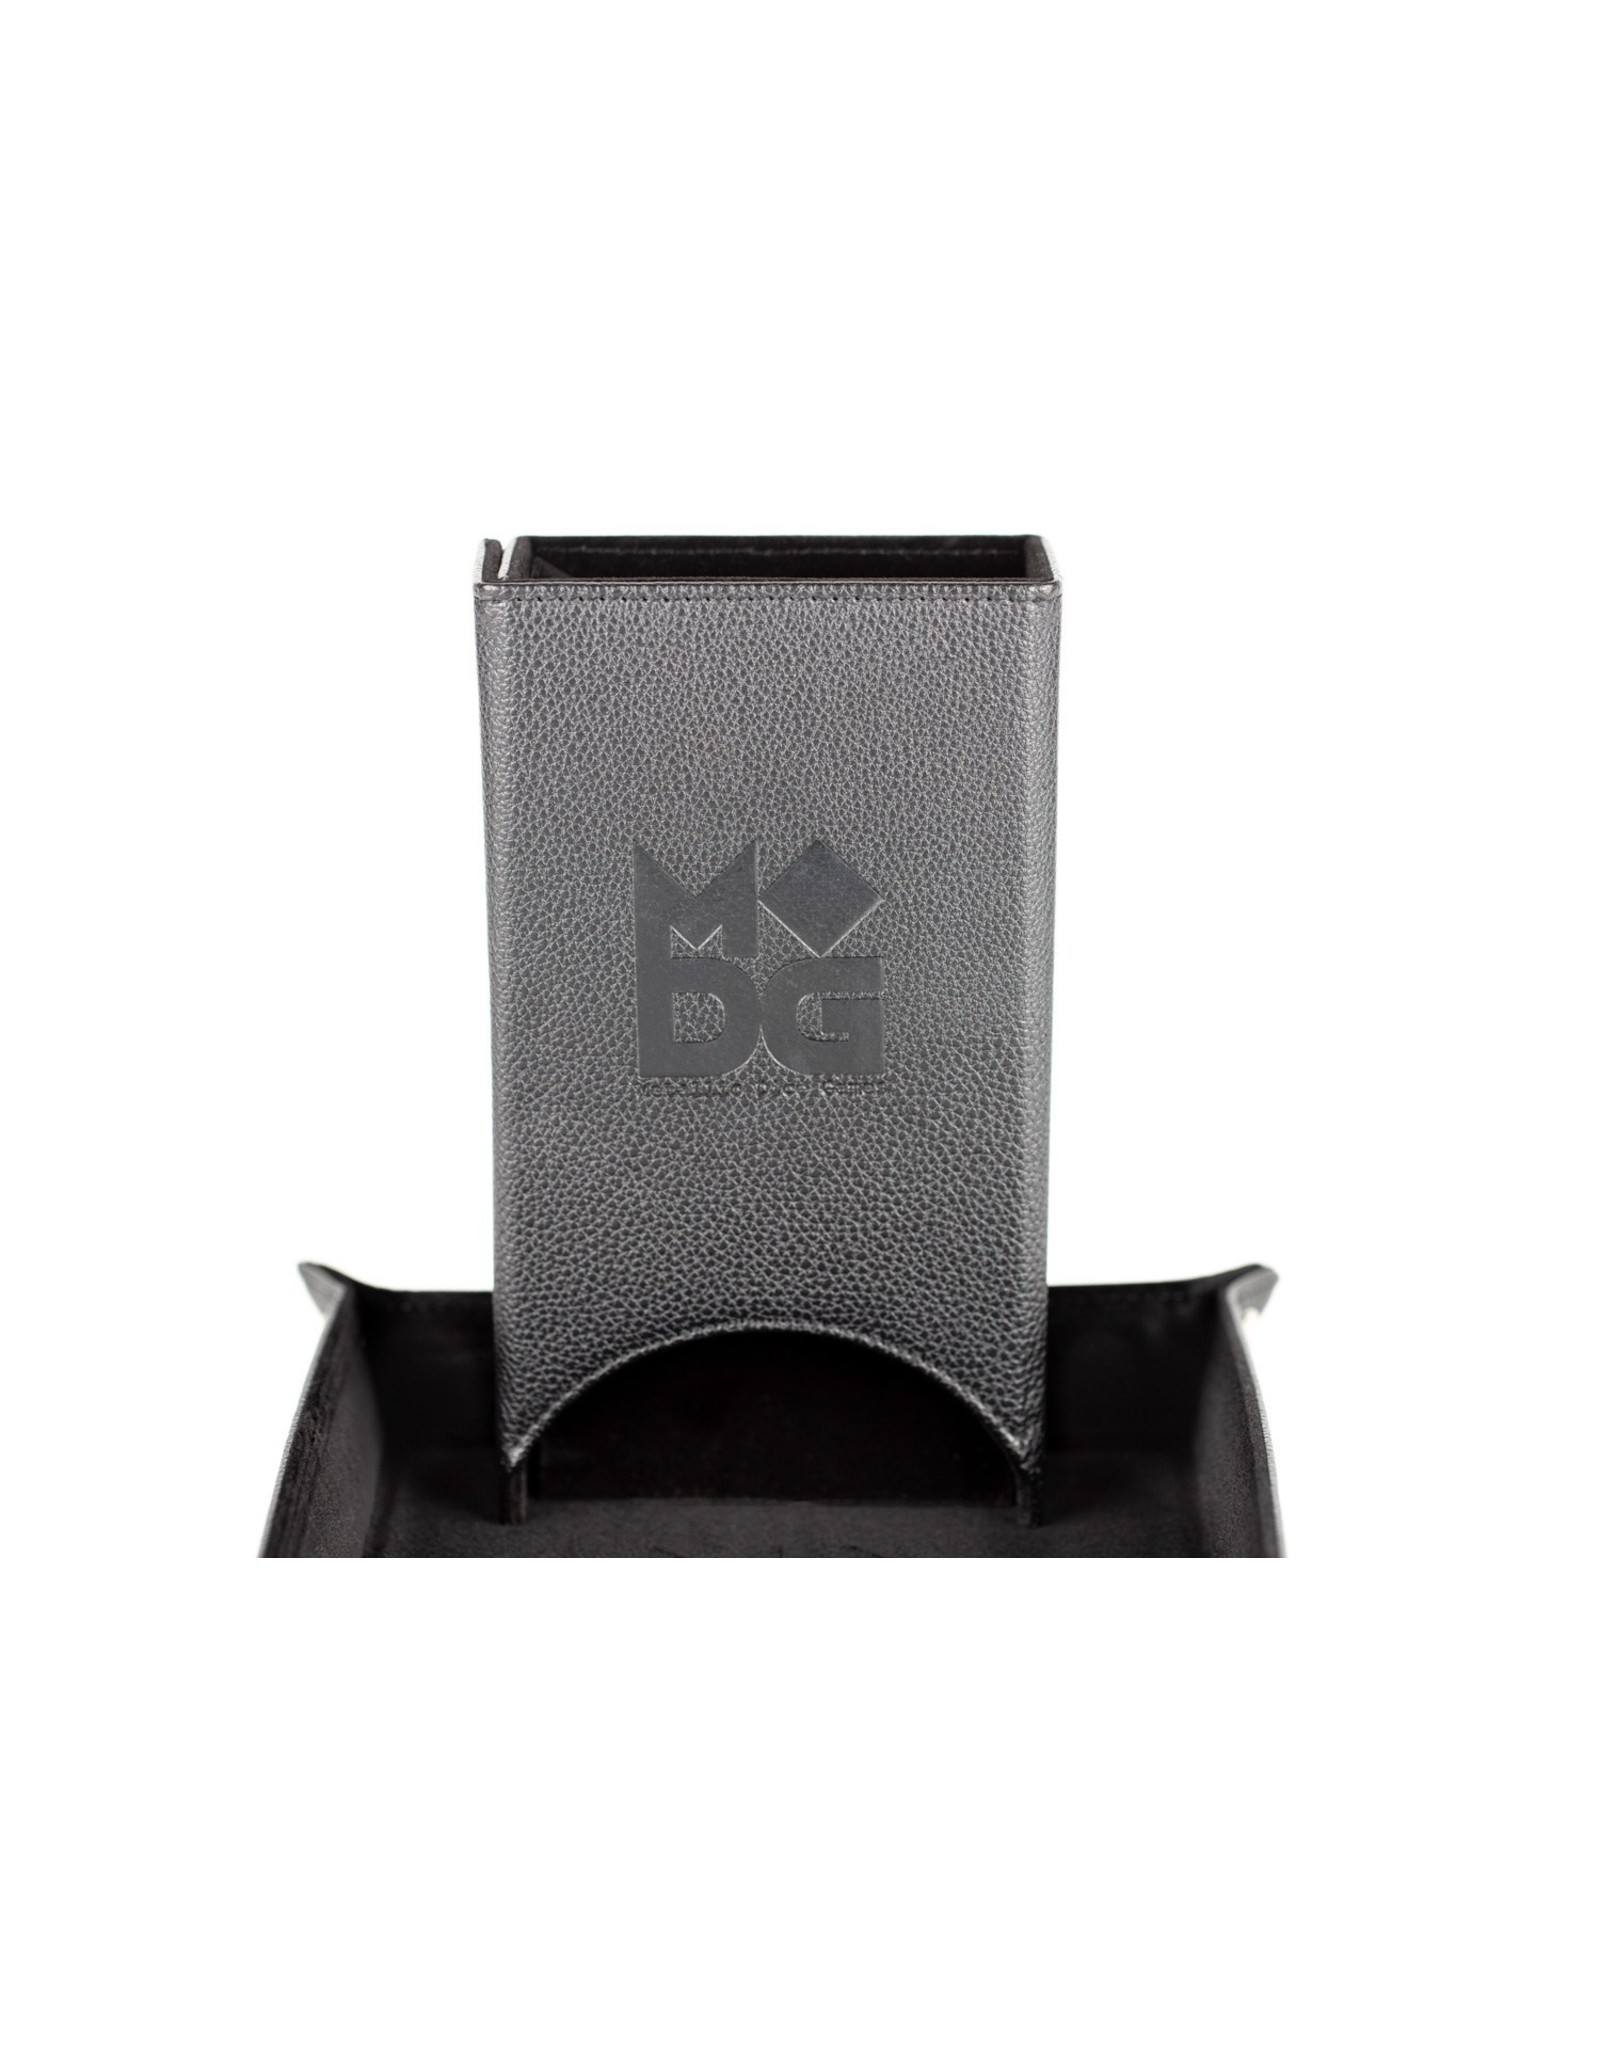 Metallic Dice Games Leather Fold Up Dice Tower: Black